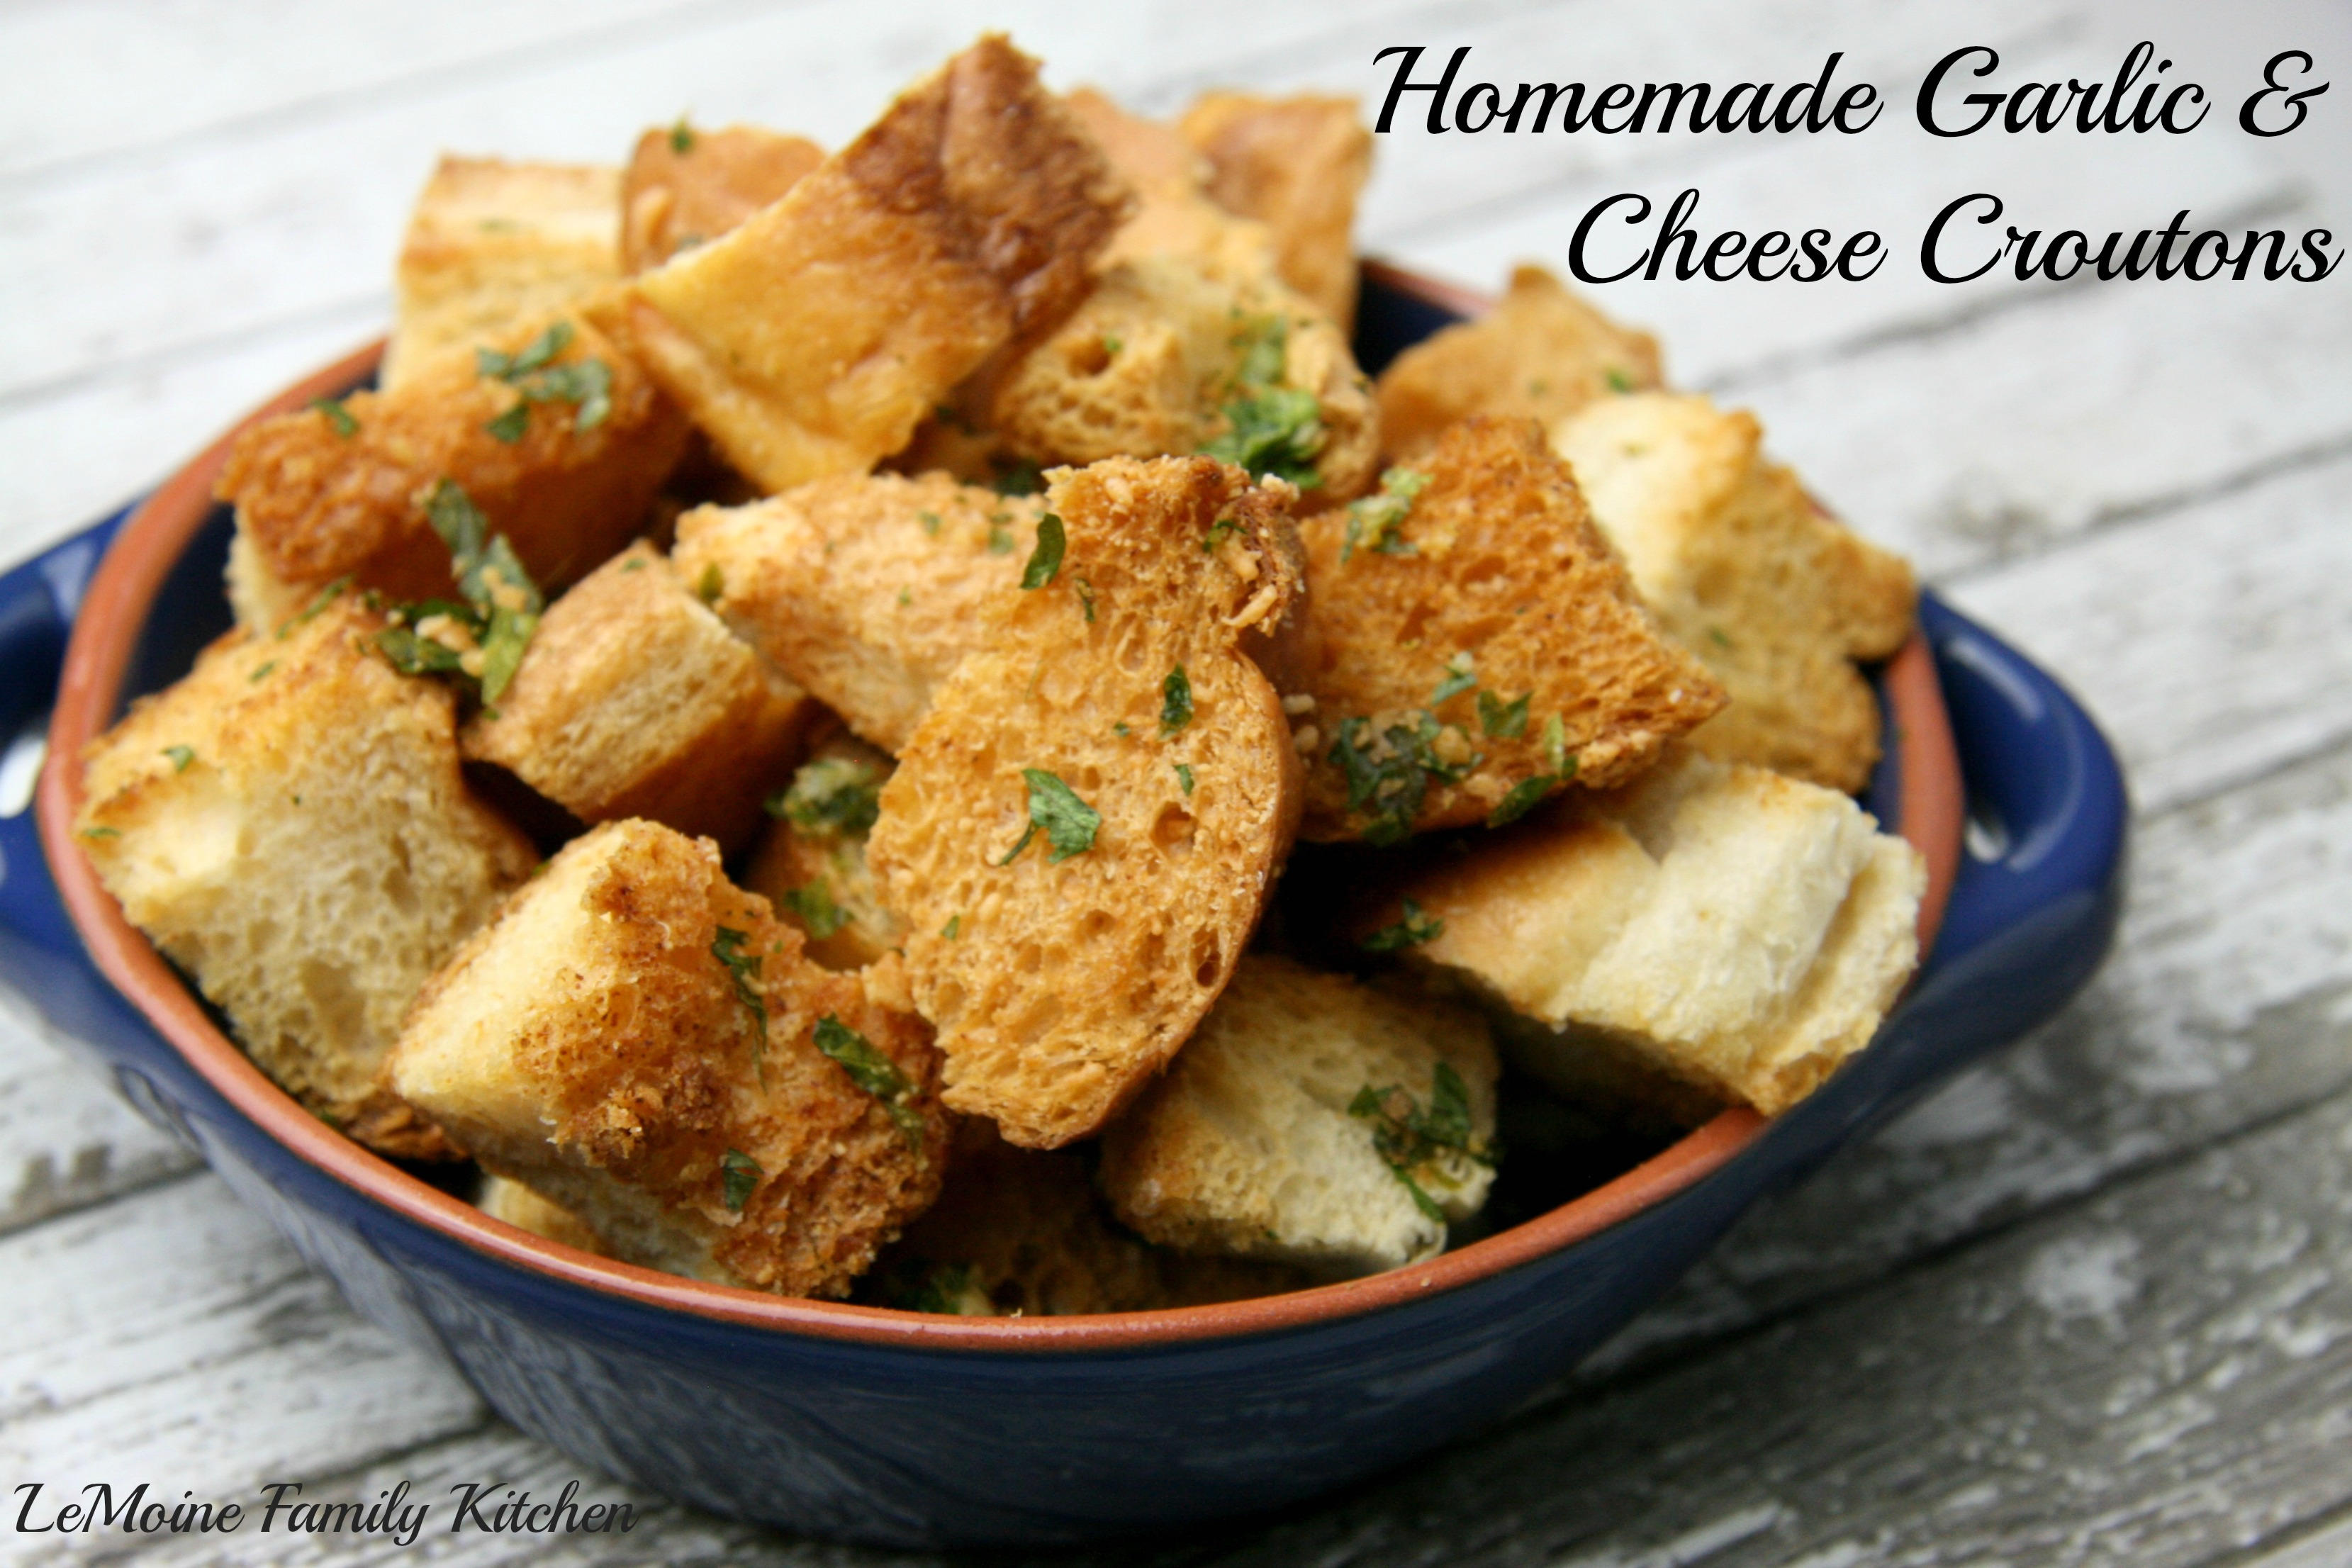 Homemade Garlic & Cheese Croutons | LeMoine Family Kitchen #croutons #leftoverbread #bread #salad #easyrecipe #homemade